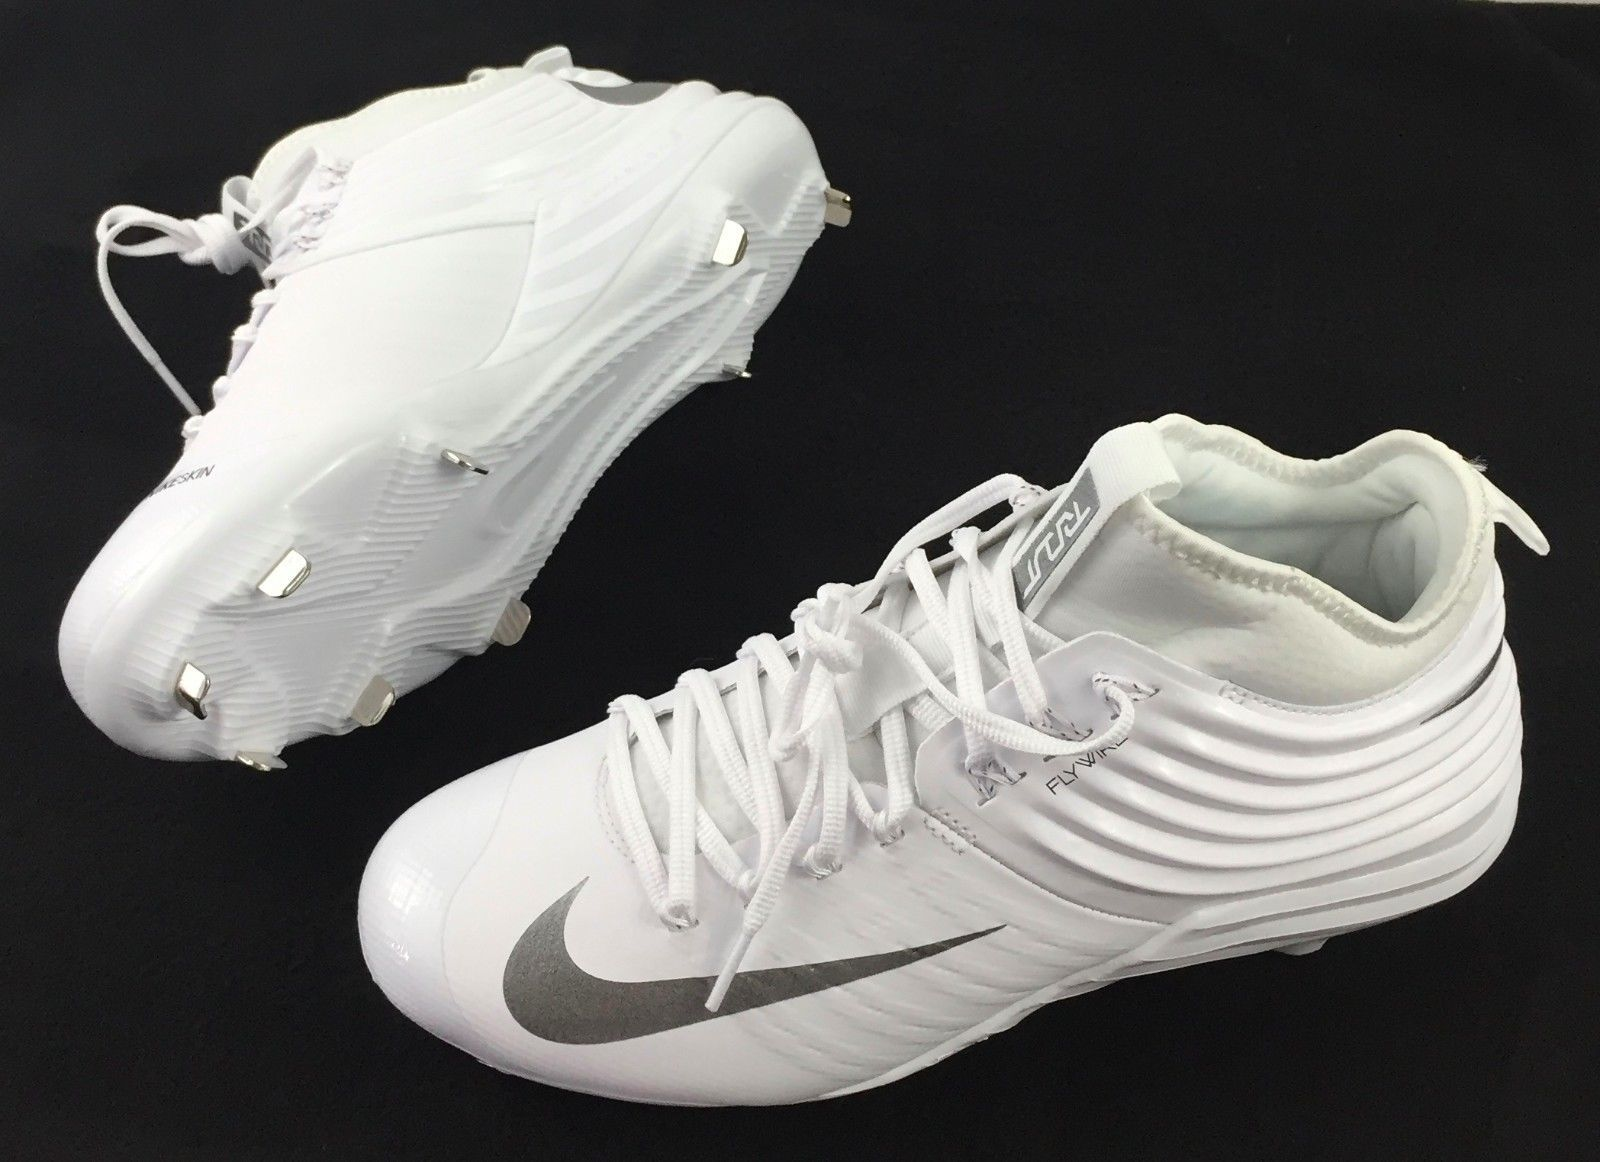 trout baseball shoes pro soccer shoes